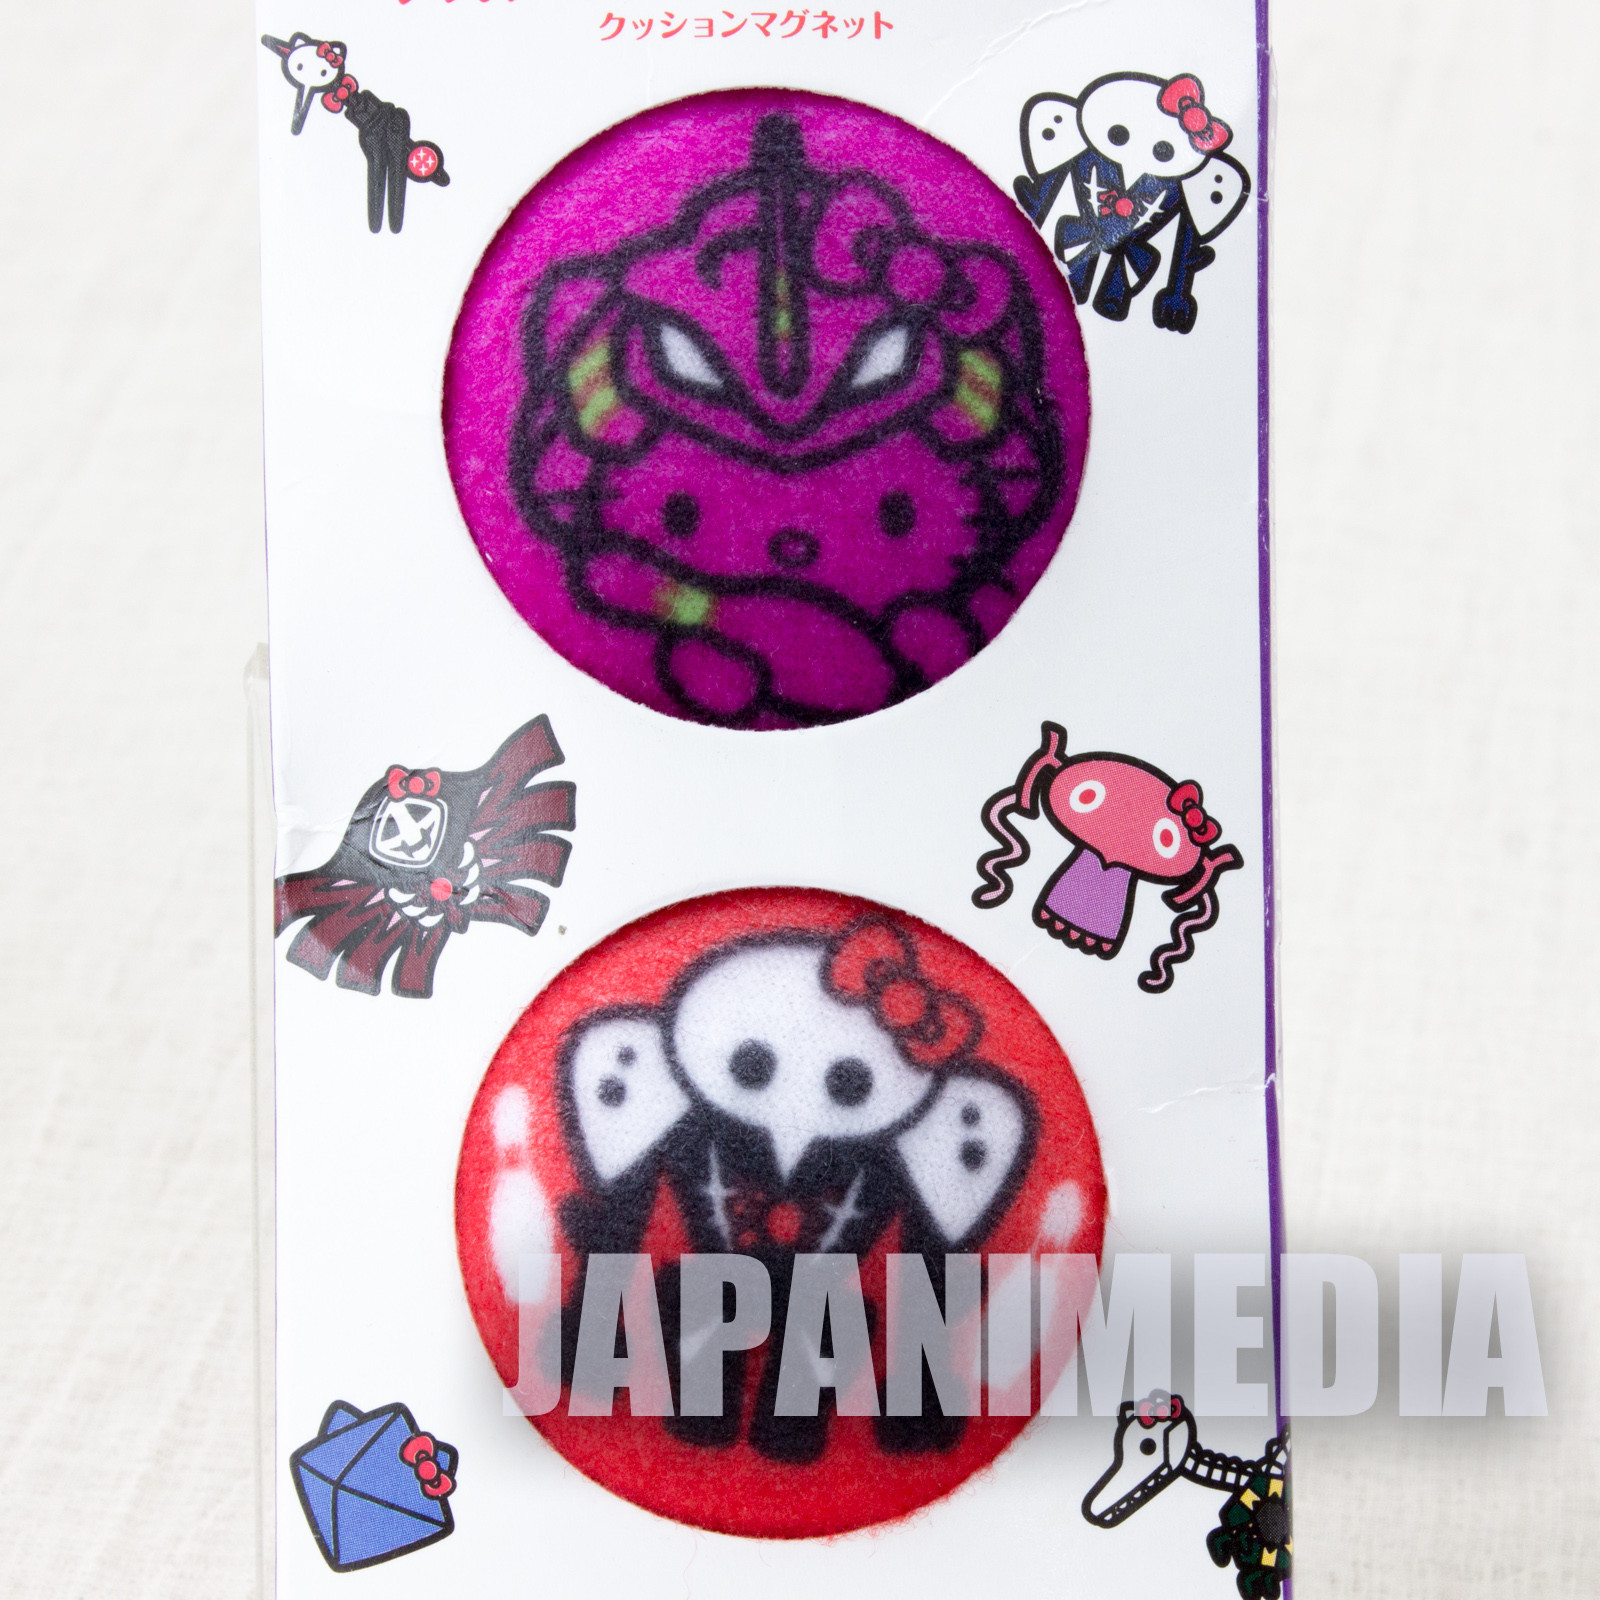 Evangelion x Hello Kitty Eva-01 & 4th Angel Sachiel Magnet 2pc Set ROUND 1 JAPAN ANIME